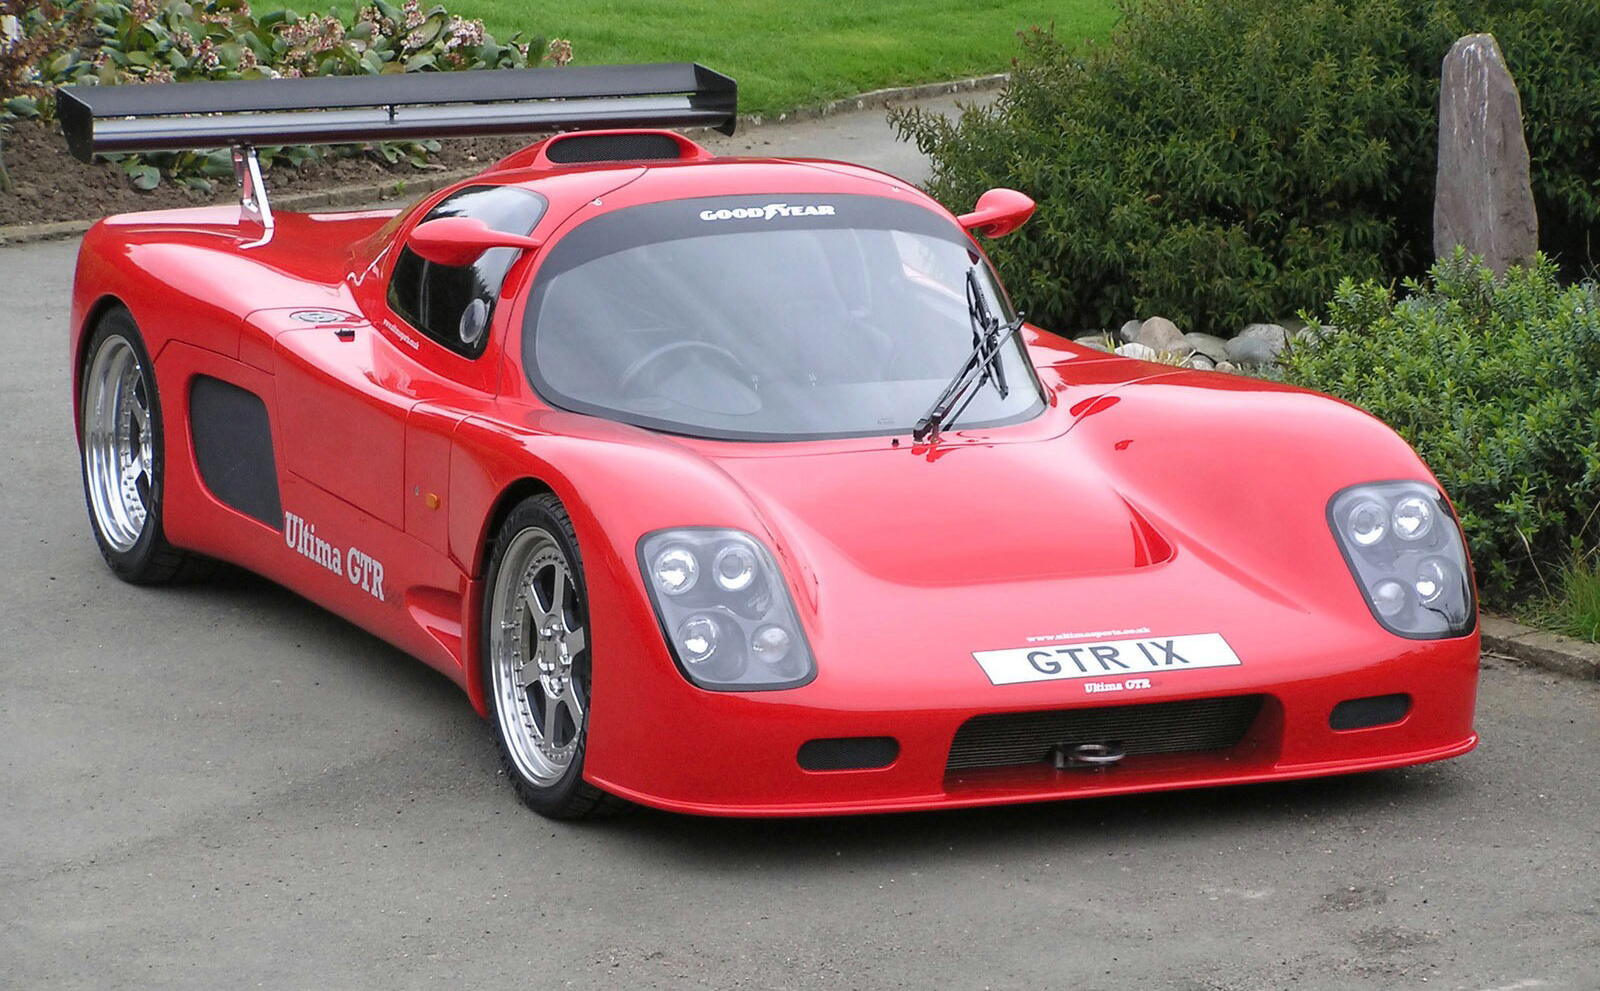 Fastest Supercar In The World Try Quickest Up Close And Personal